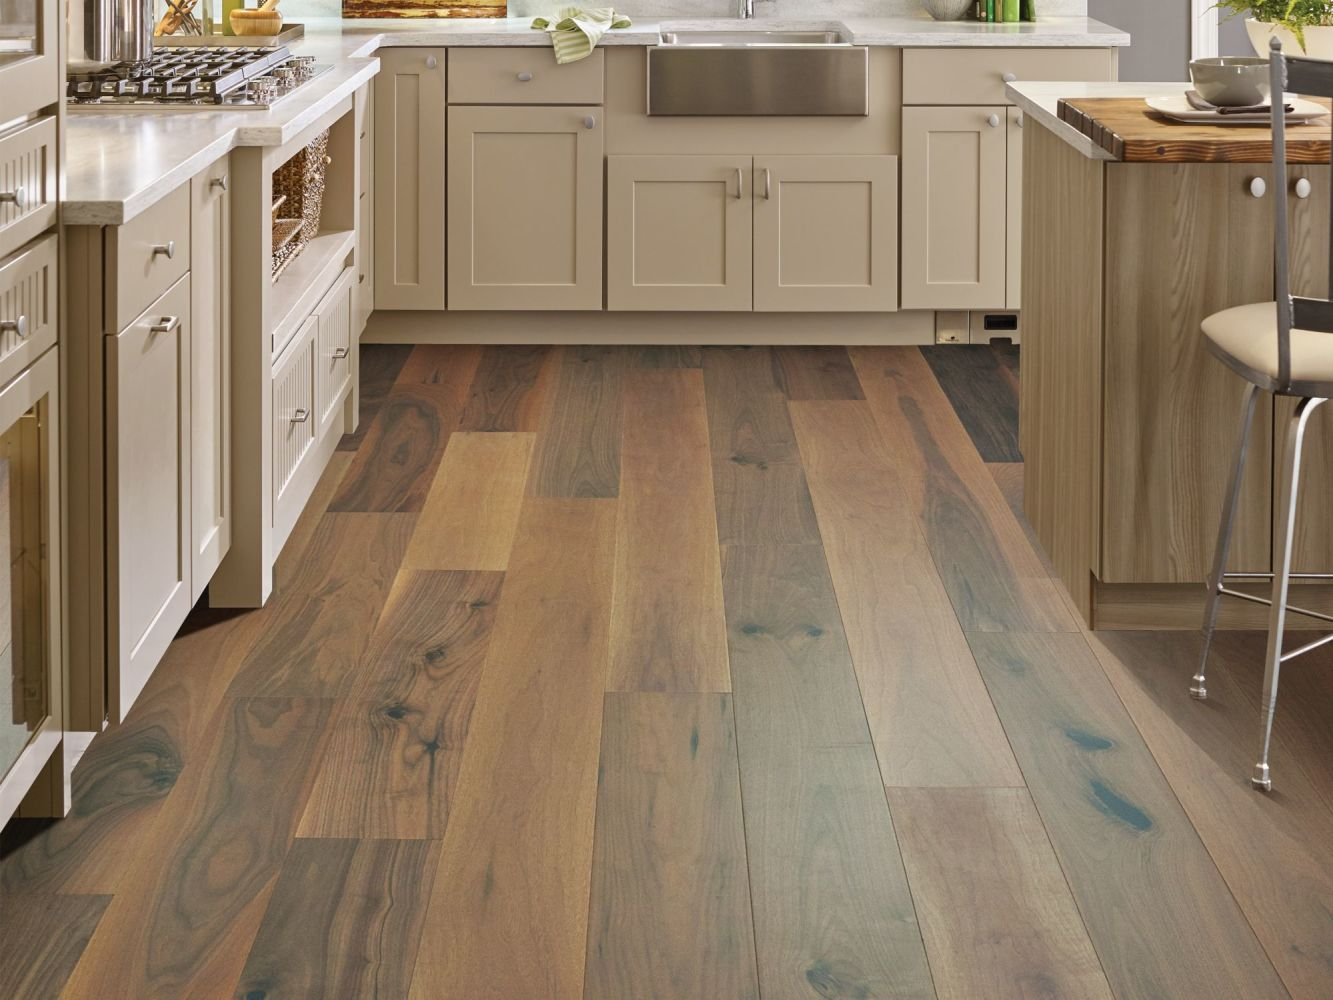 Shaw Floors Floorte Exquisite Rich Walnut 02039_CWFW1